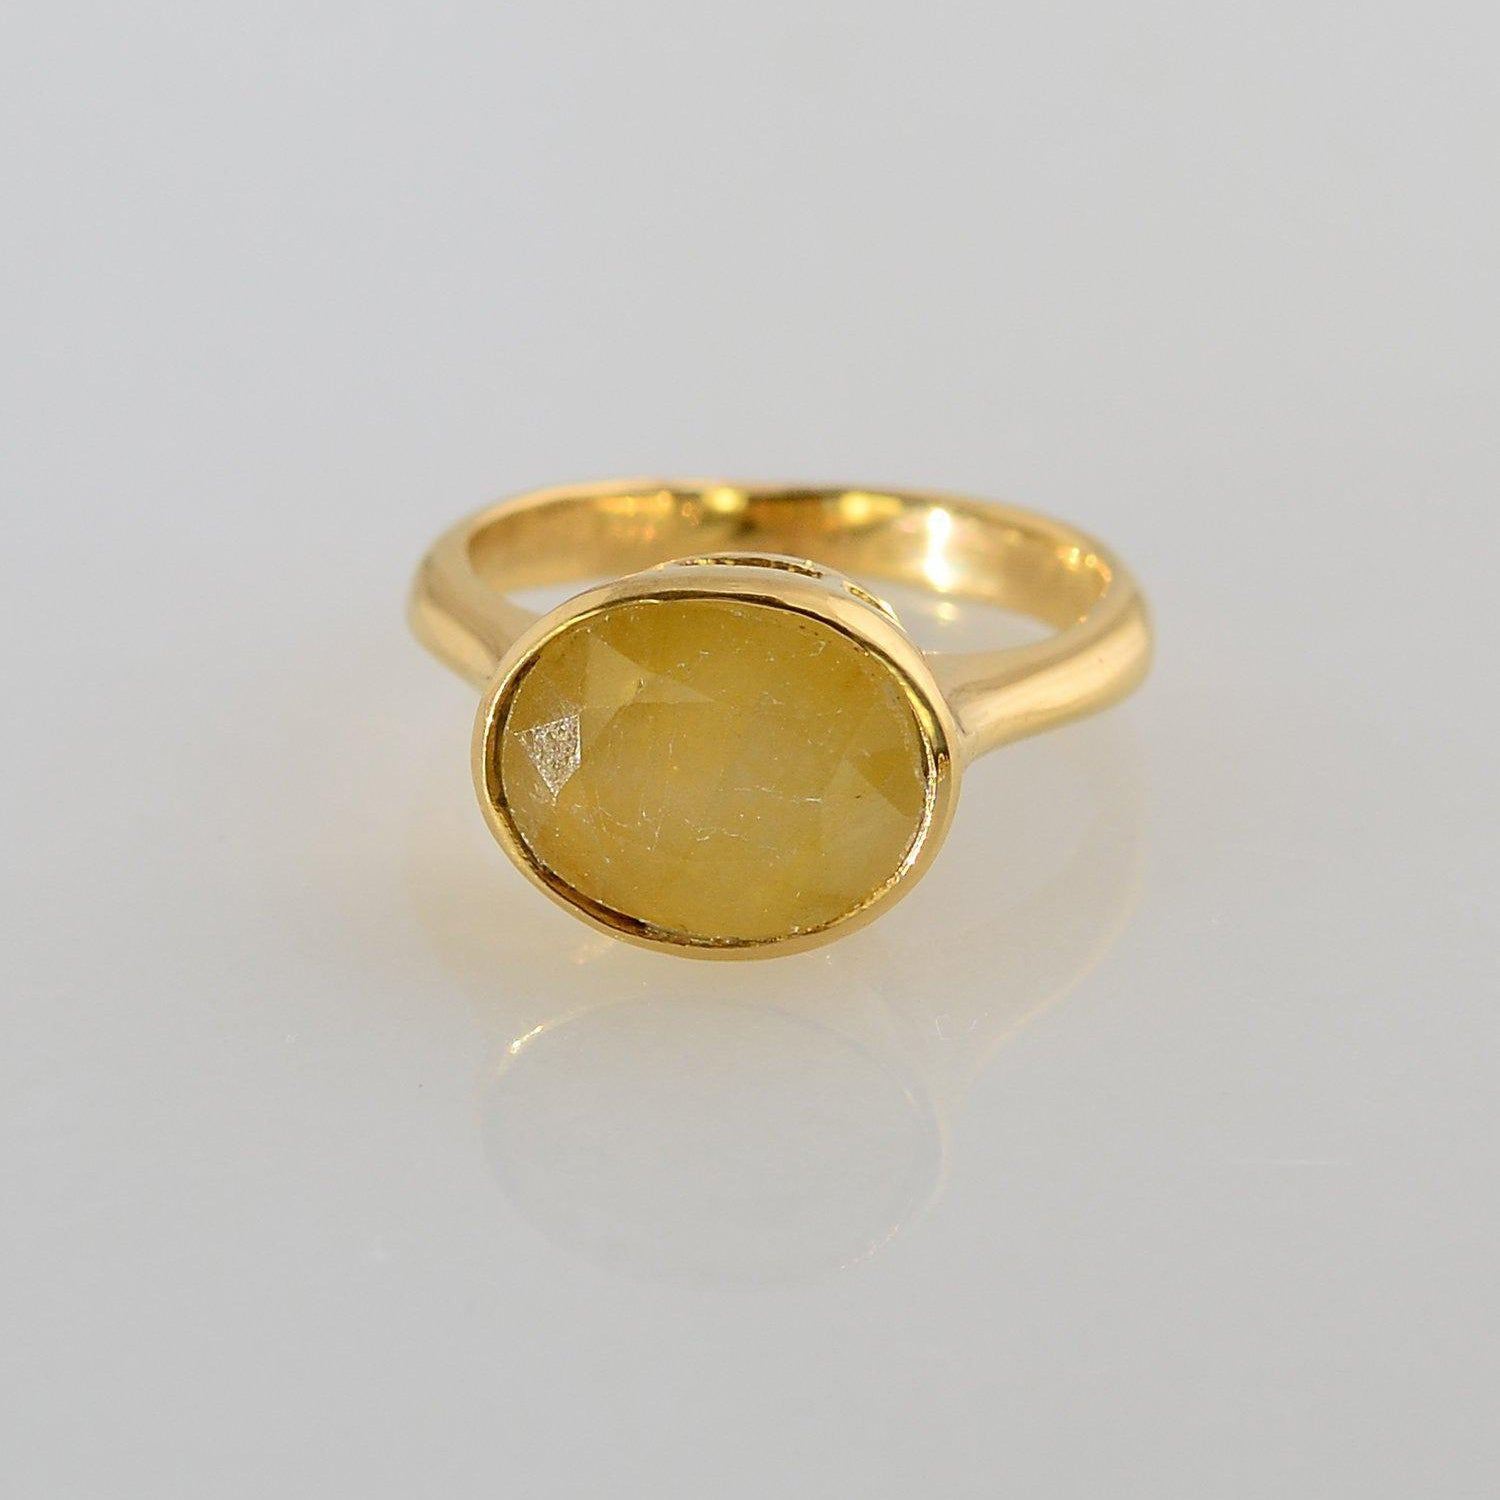 Sapphire Ring, Yellow Sapphire ring, gemstone ring, Gems Ring, Custom Gold Stackable Ring, Gold Ring, Oval Ring